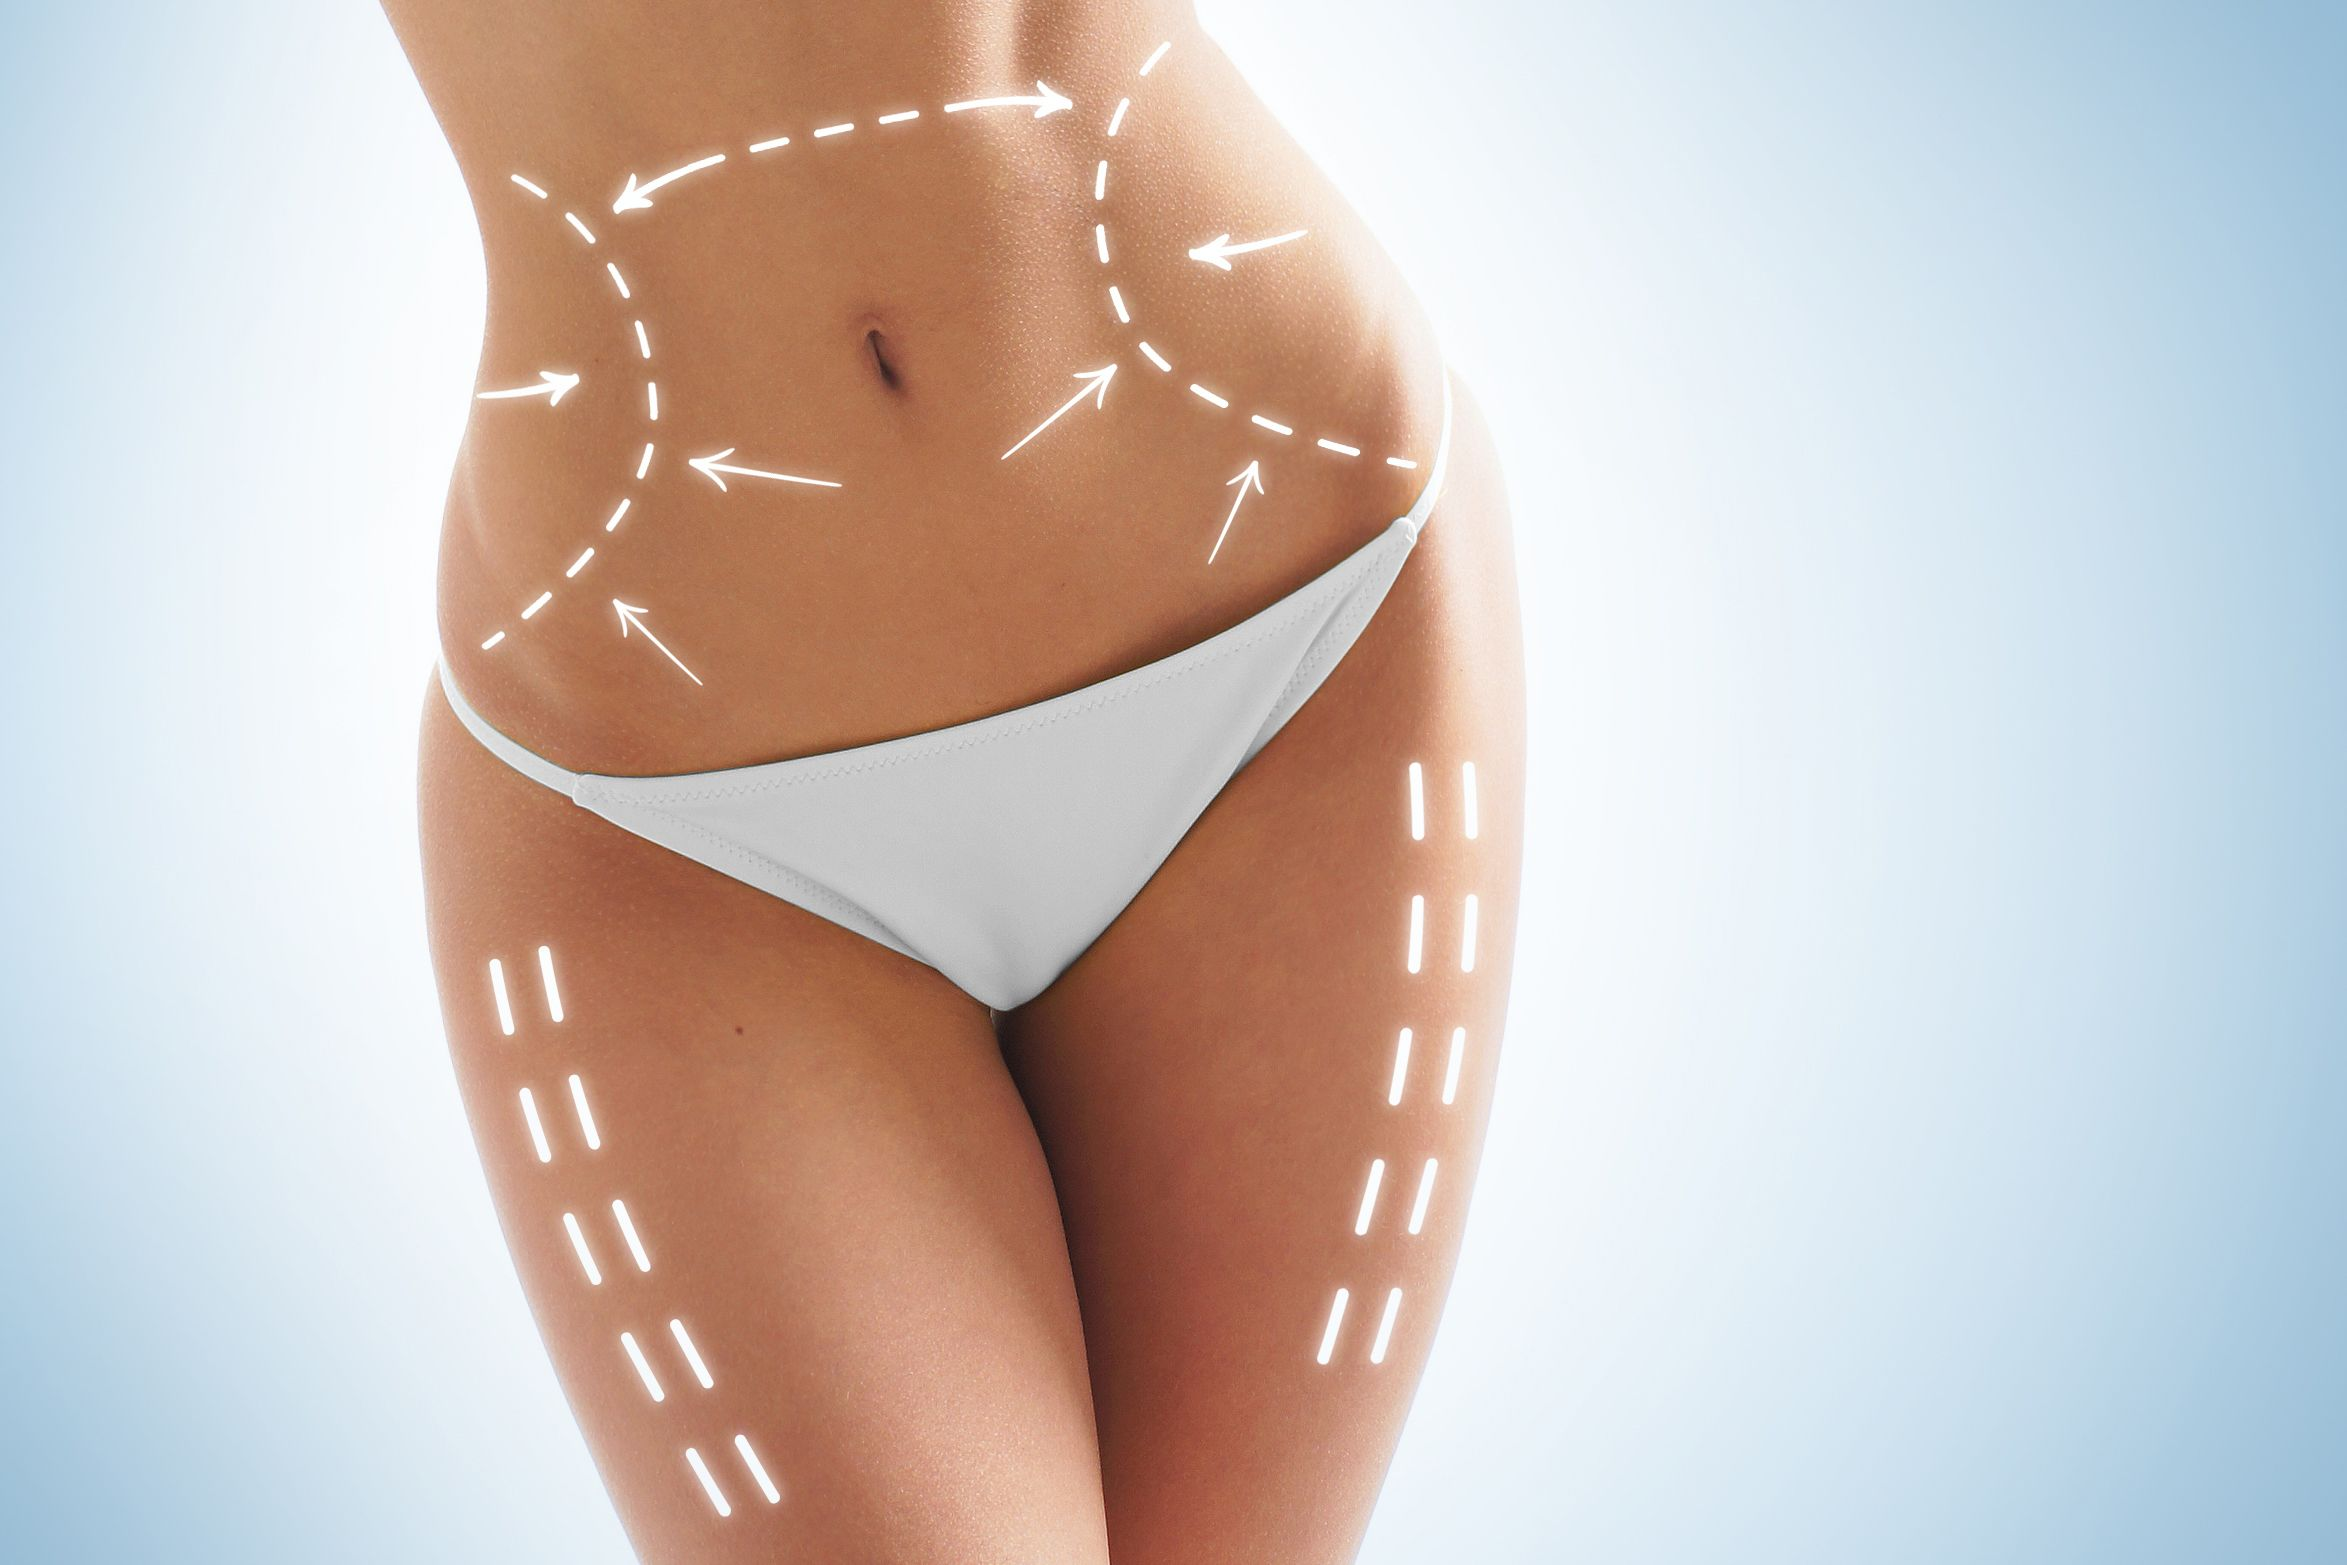 Woman's slim torso and legs with lines marking contouring